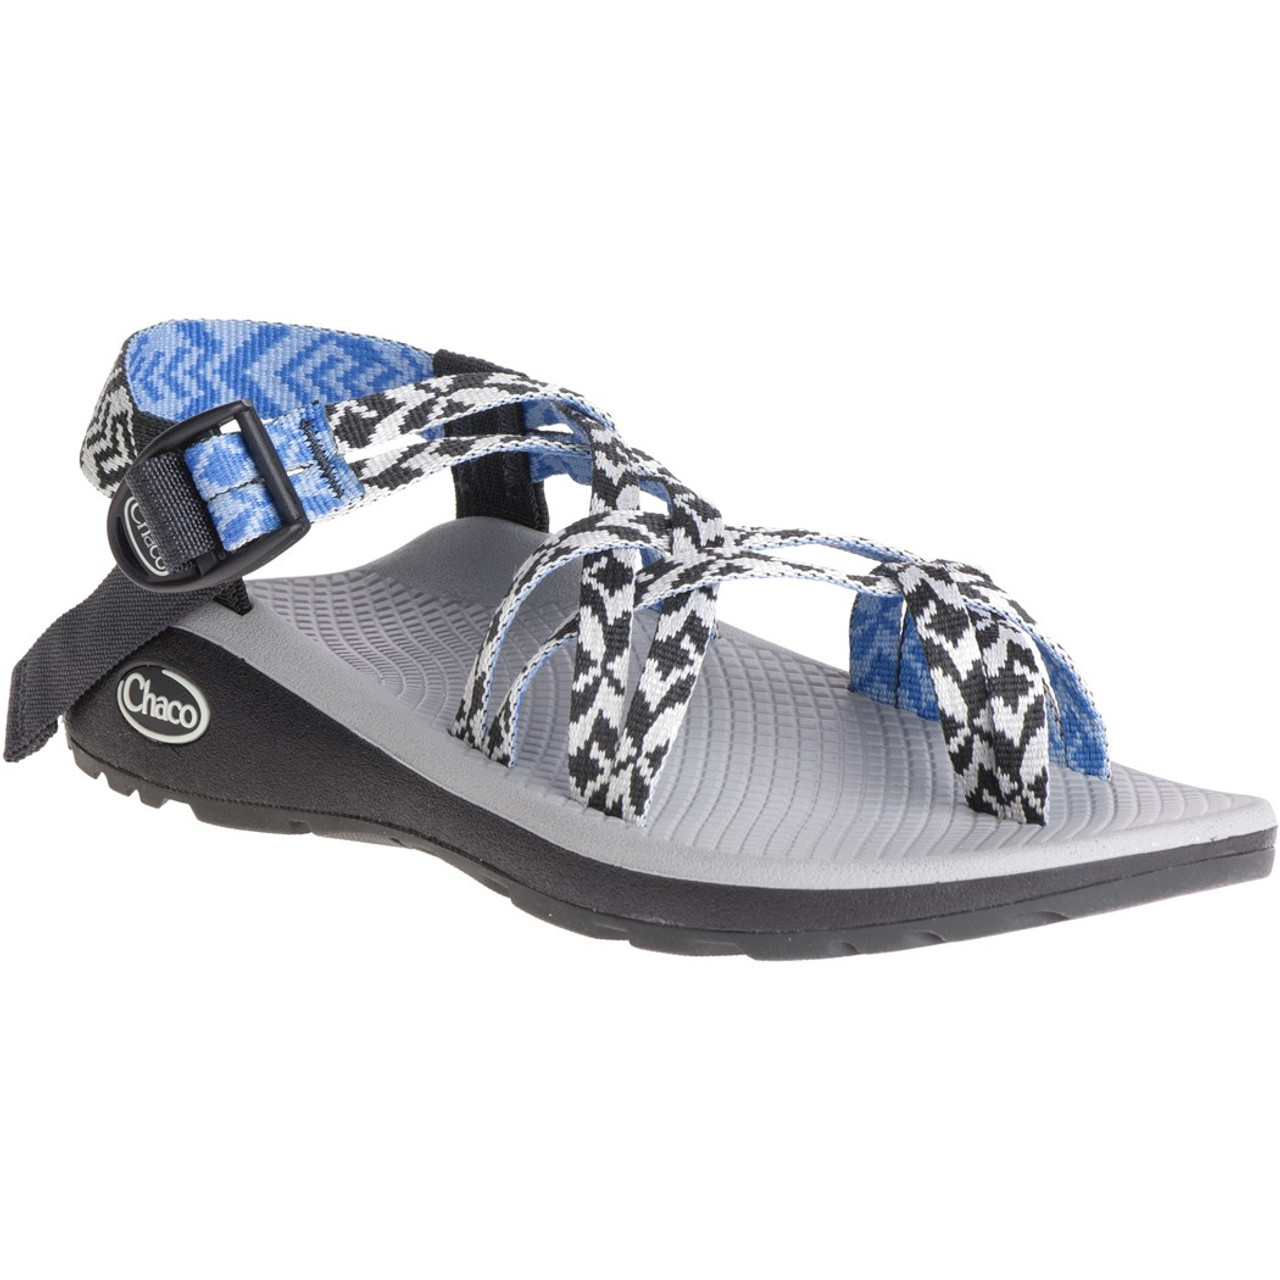 6952b3e1f2ef Chacos Women s Sandals - Z Cloud X2 - Glide Blue - Surf and Dirt